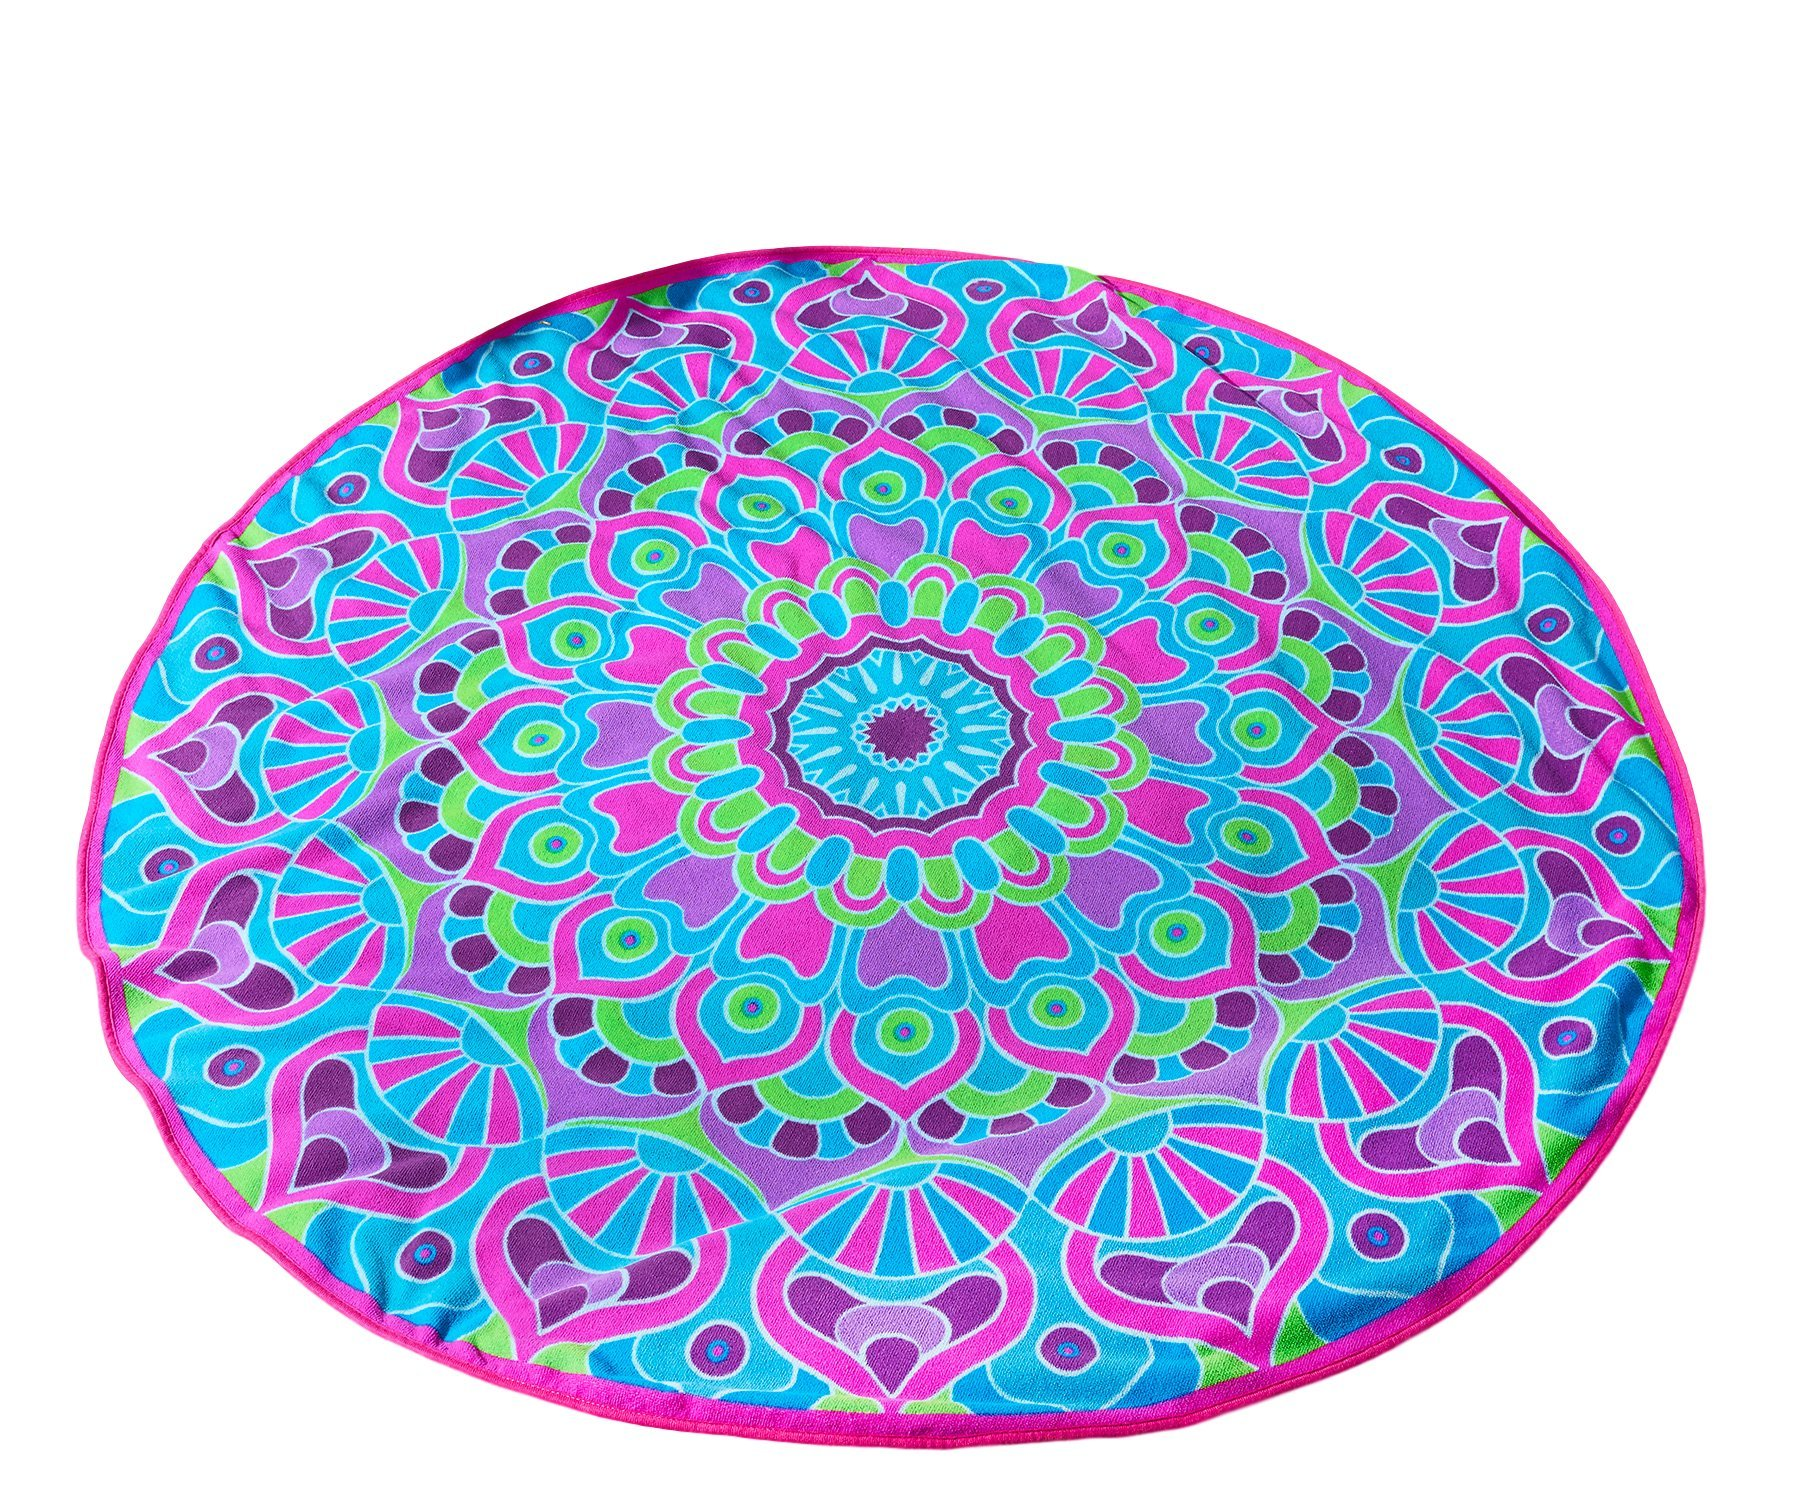 Giftcraft Tranquility Design Round Beach Towel 59 (Purple)